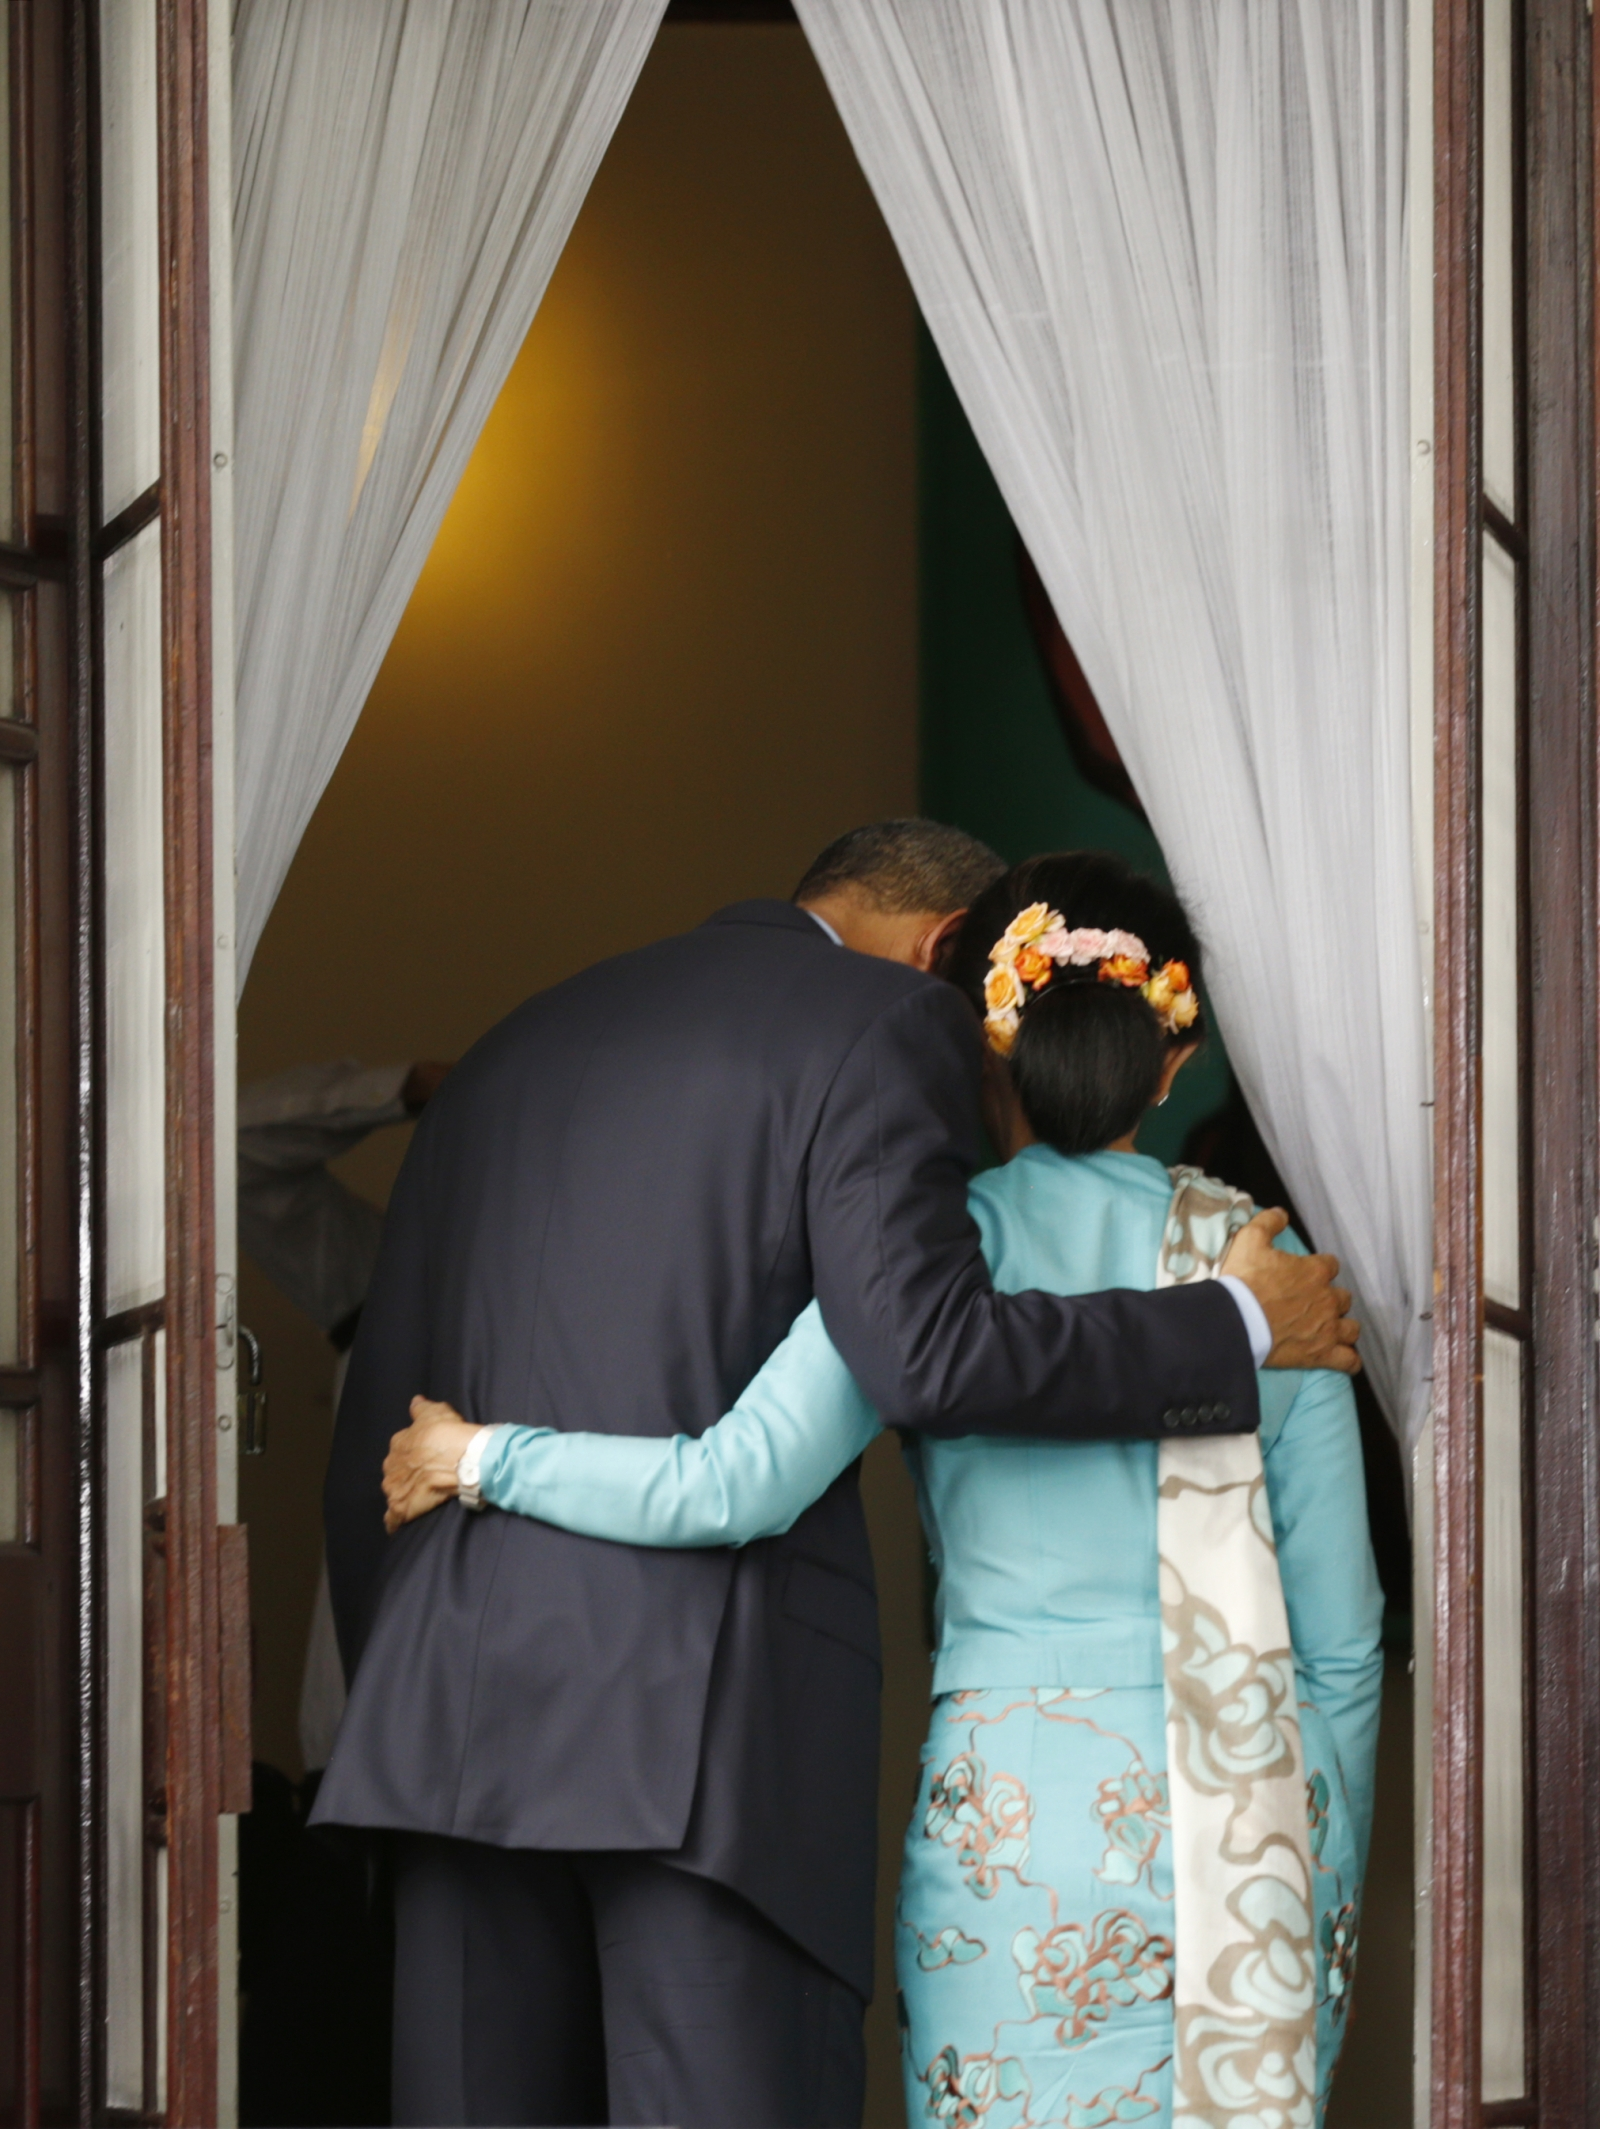 U.S. President Barack Obama puts his arm around opposition politician Aung San Suu Kyi after a joint press conference following their meeting at her residence in Yangon